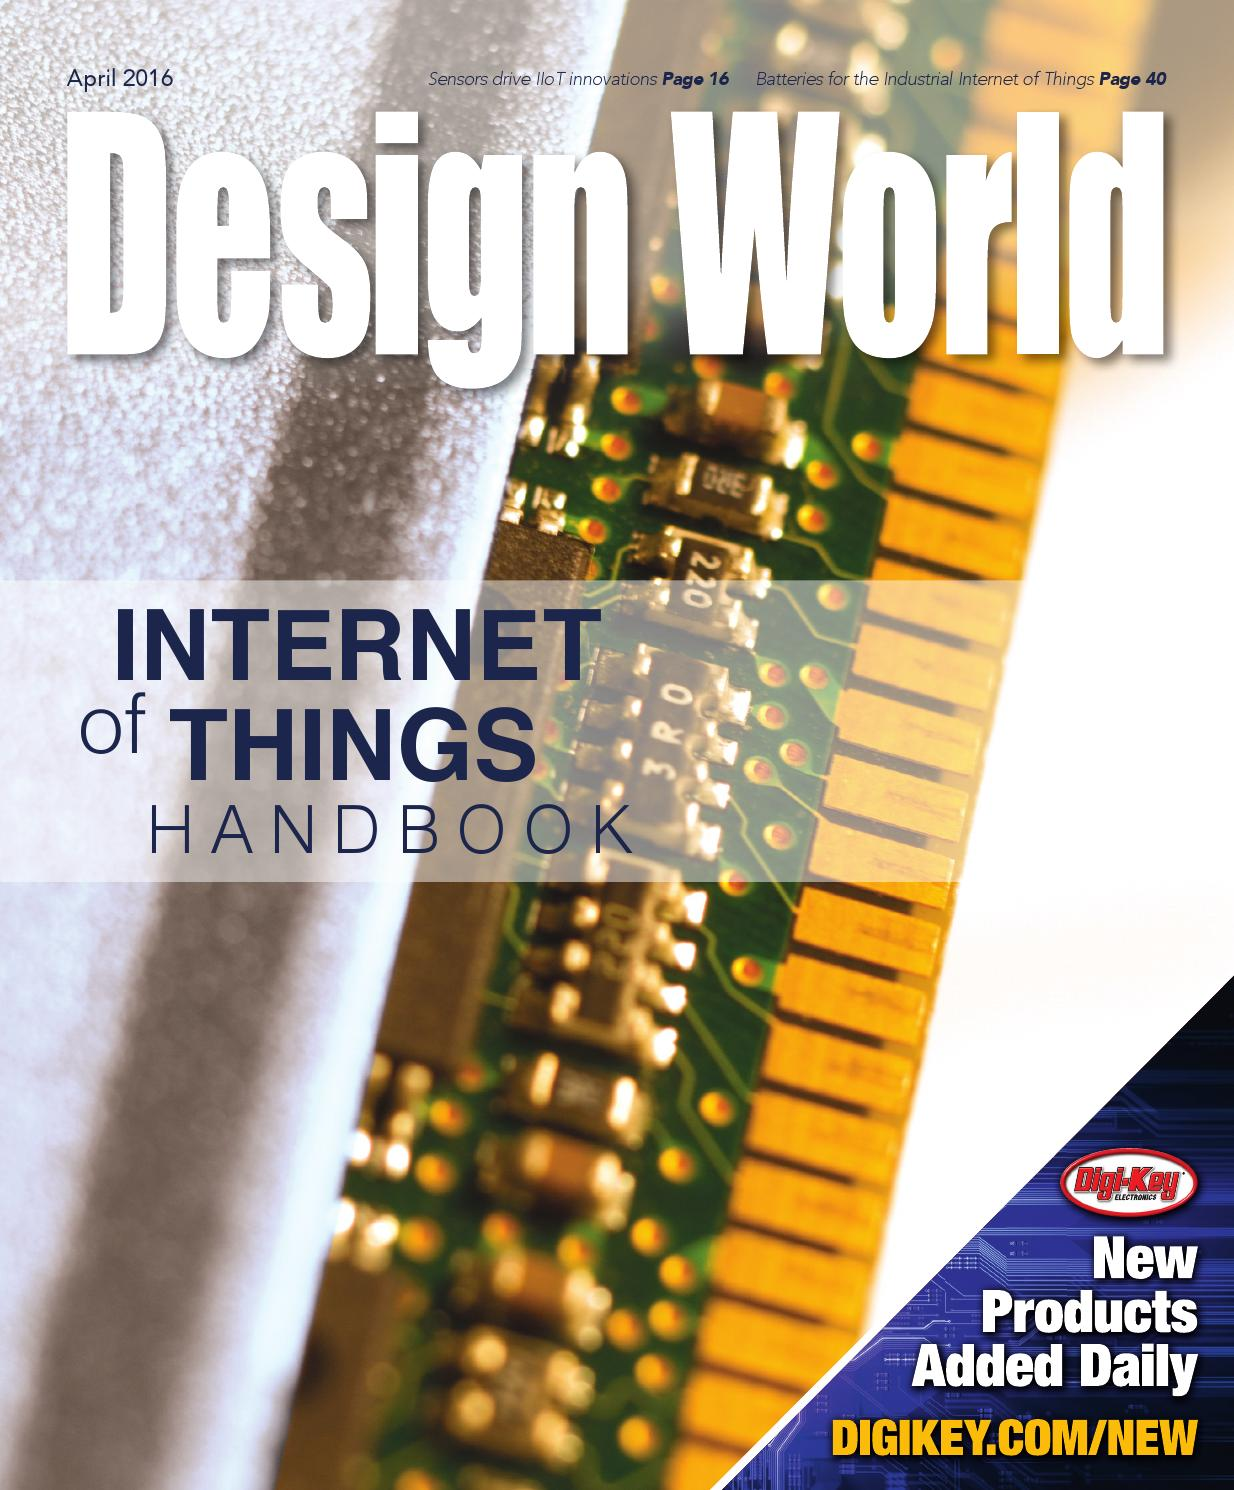 Internet Of Things Handbook 2016 By Wtwh Media Llc Issuu Inductive Sensor Circuit 1 10 From 40 Votes 2